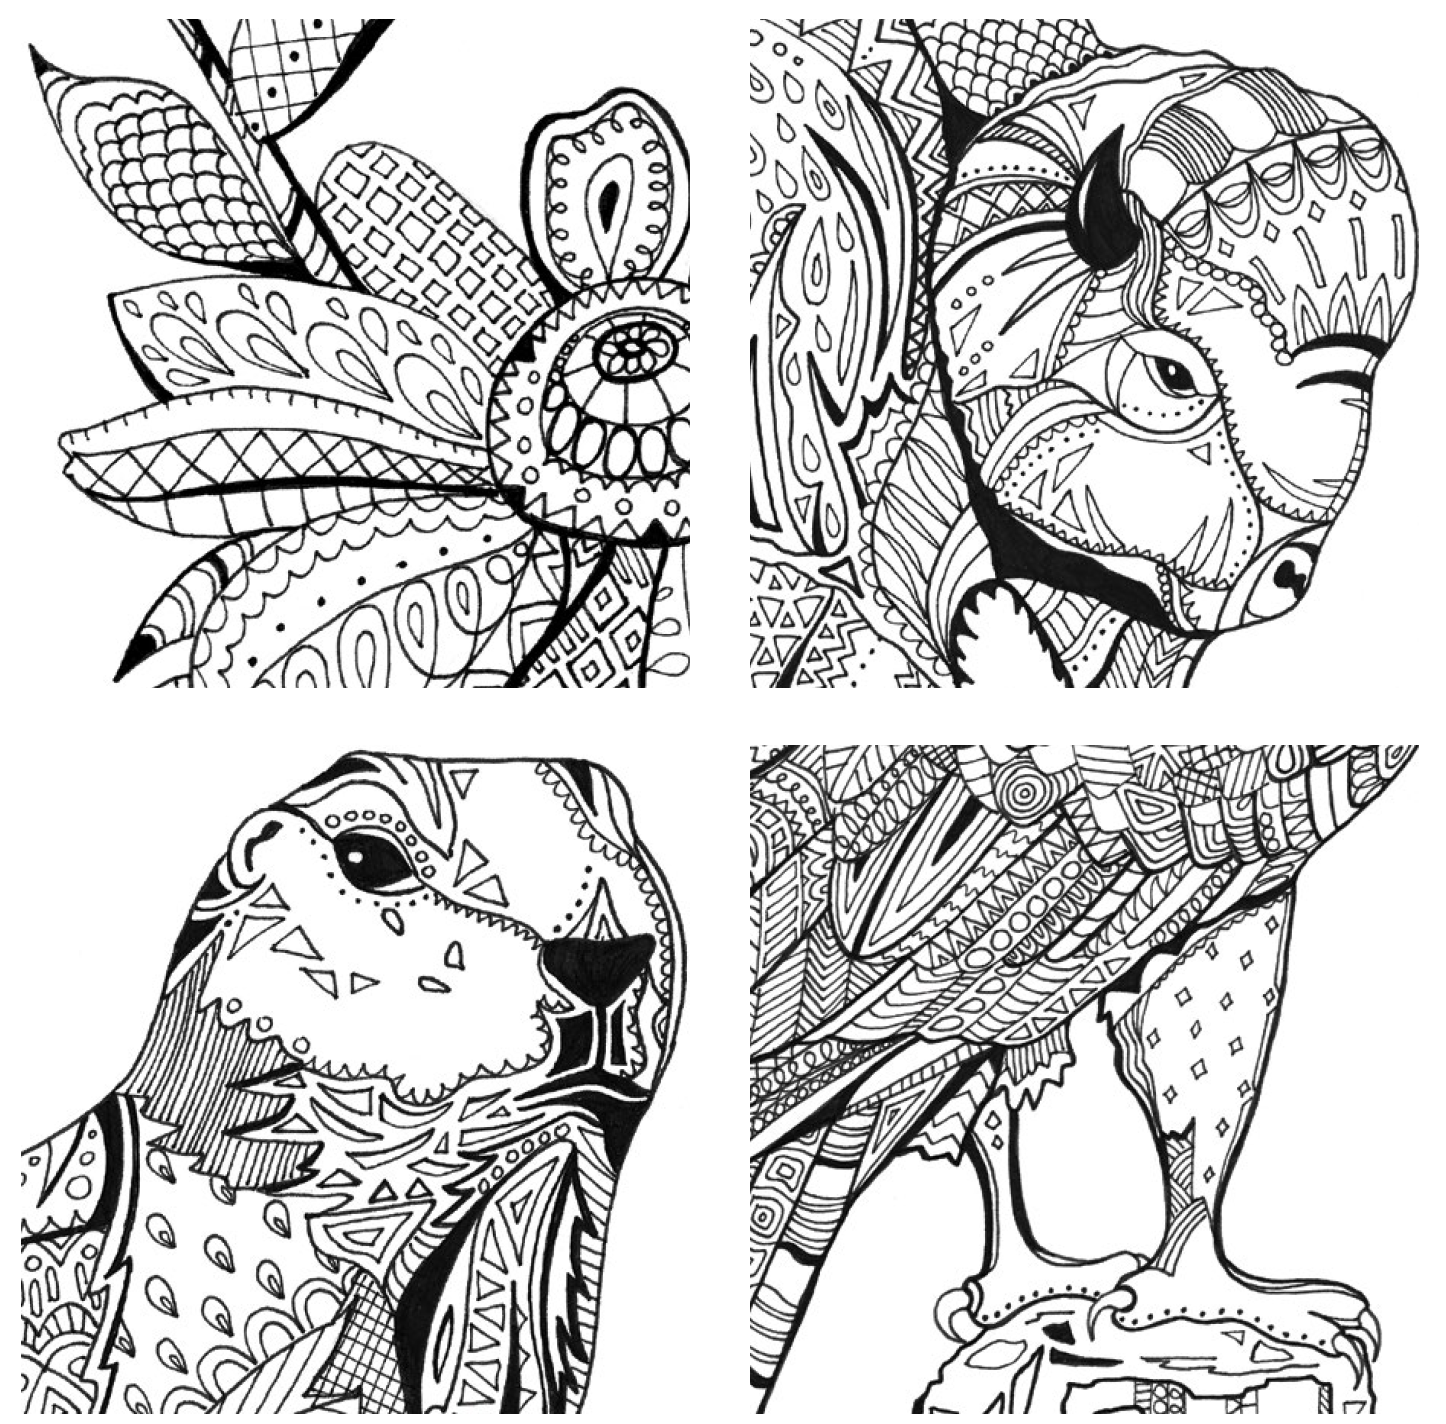 download free nature coloring book for adults - Nature Coloring Book